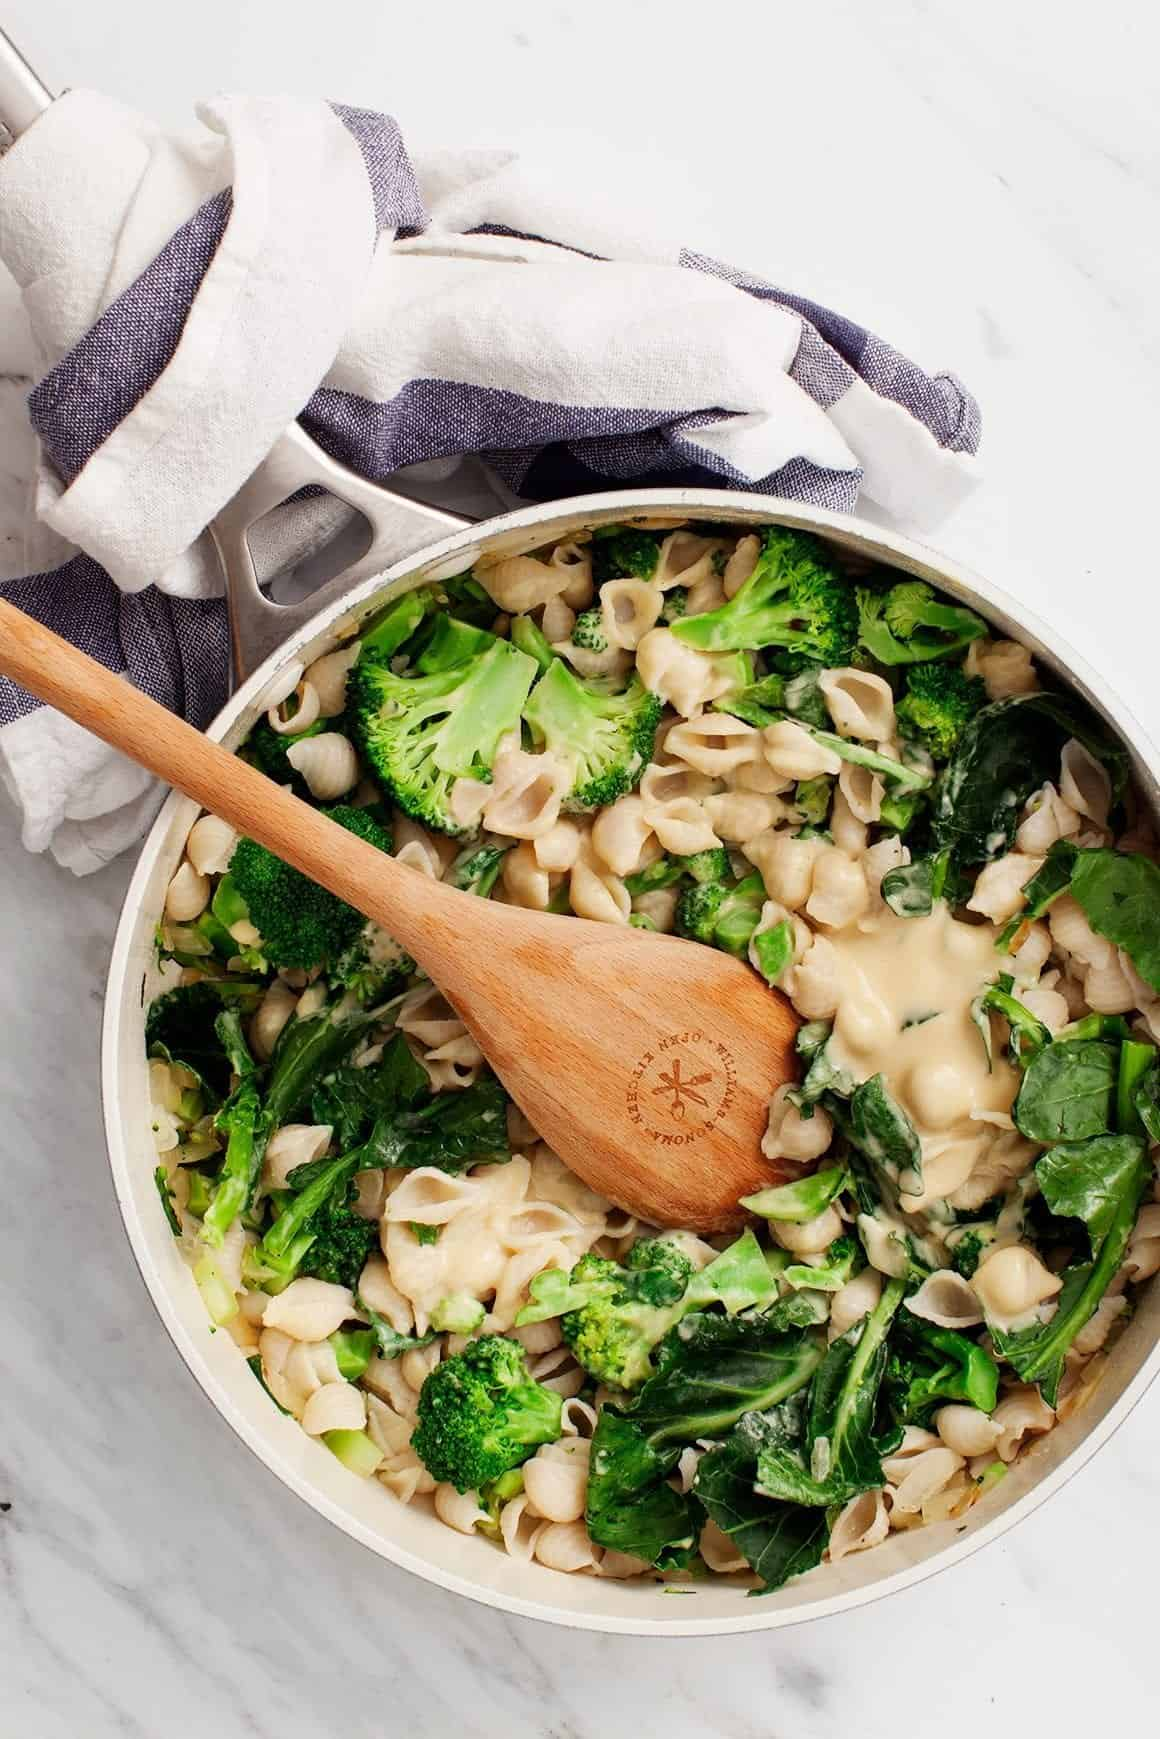 Creamy White Bean Shells with Broccoli